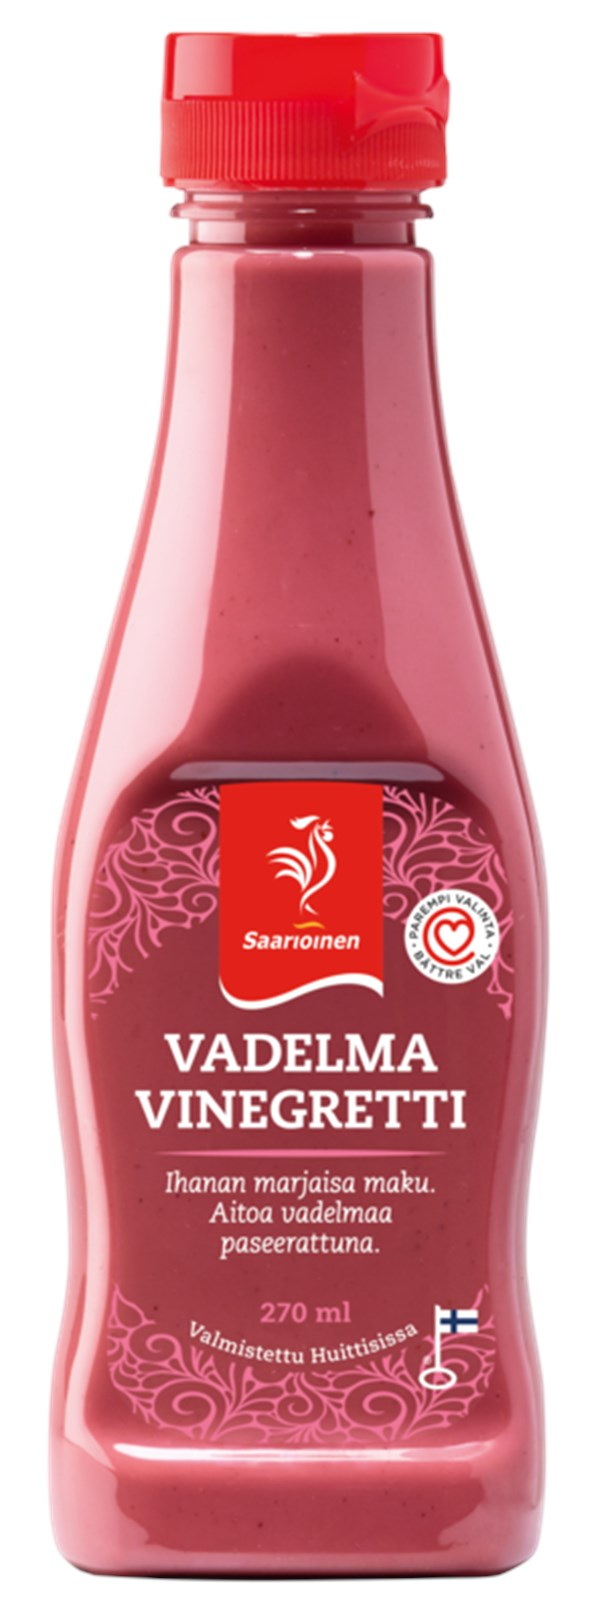 Vadelmavinegretti 270 ml